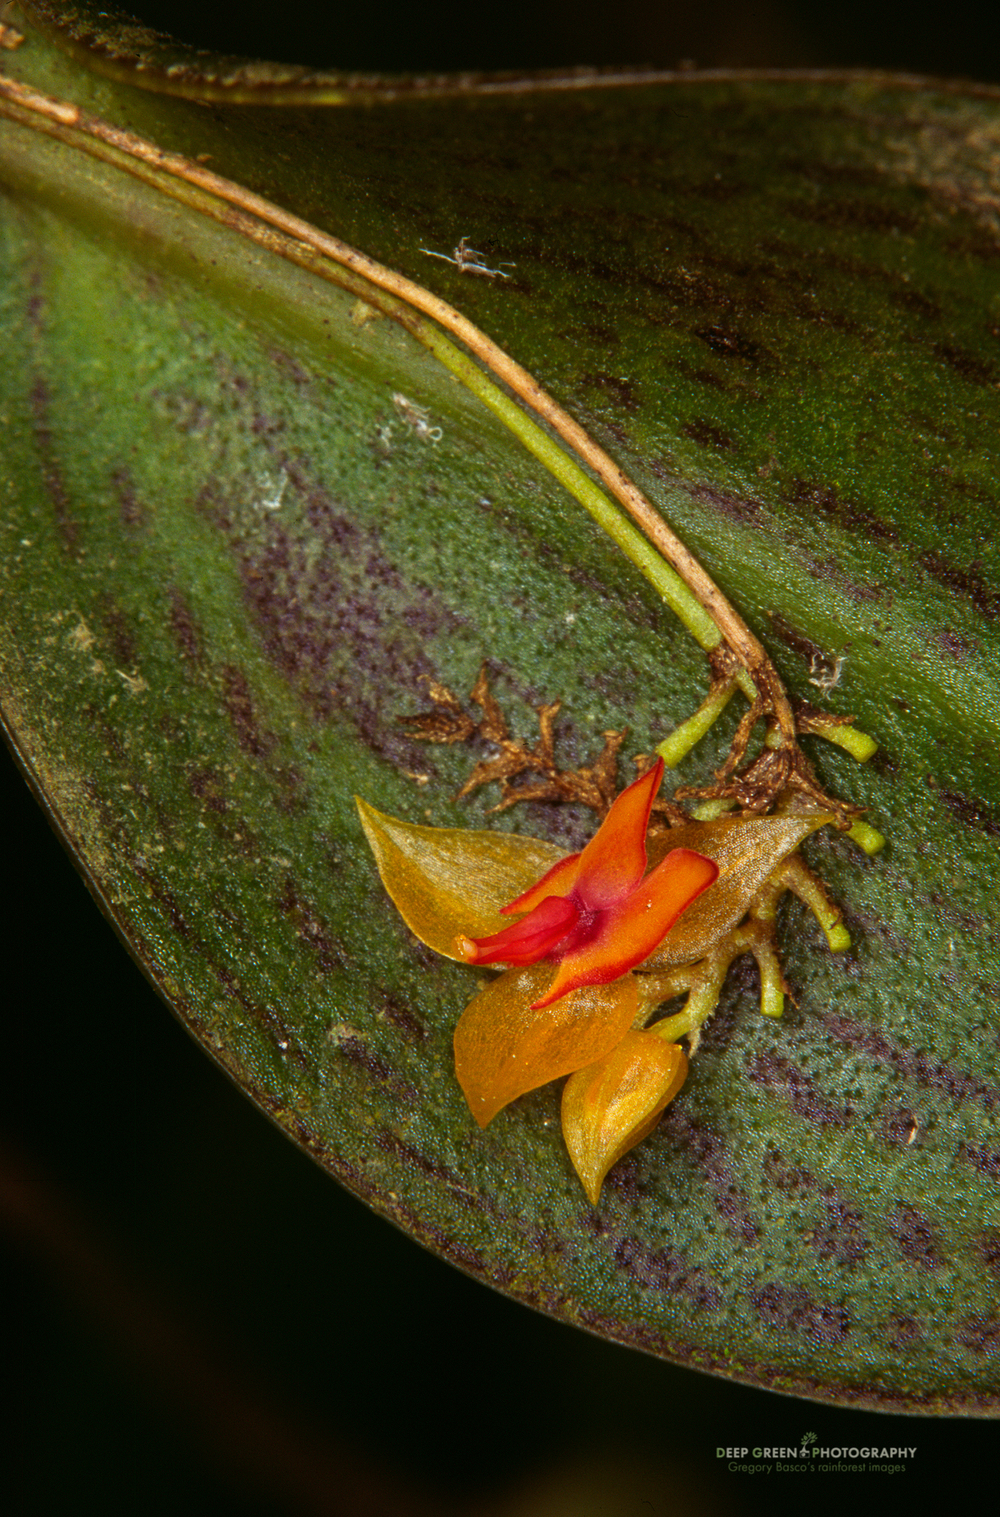 Microorchid flower and leaf, Monteverde Cloud Forest Preserve, Costa Rica